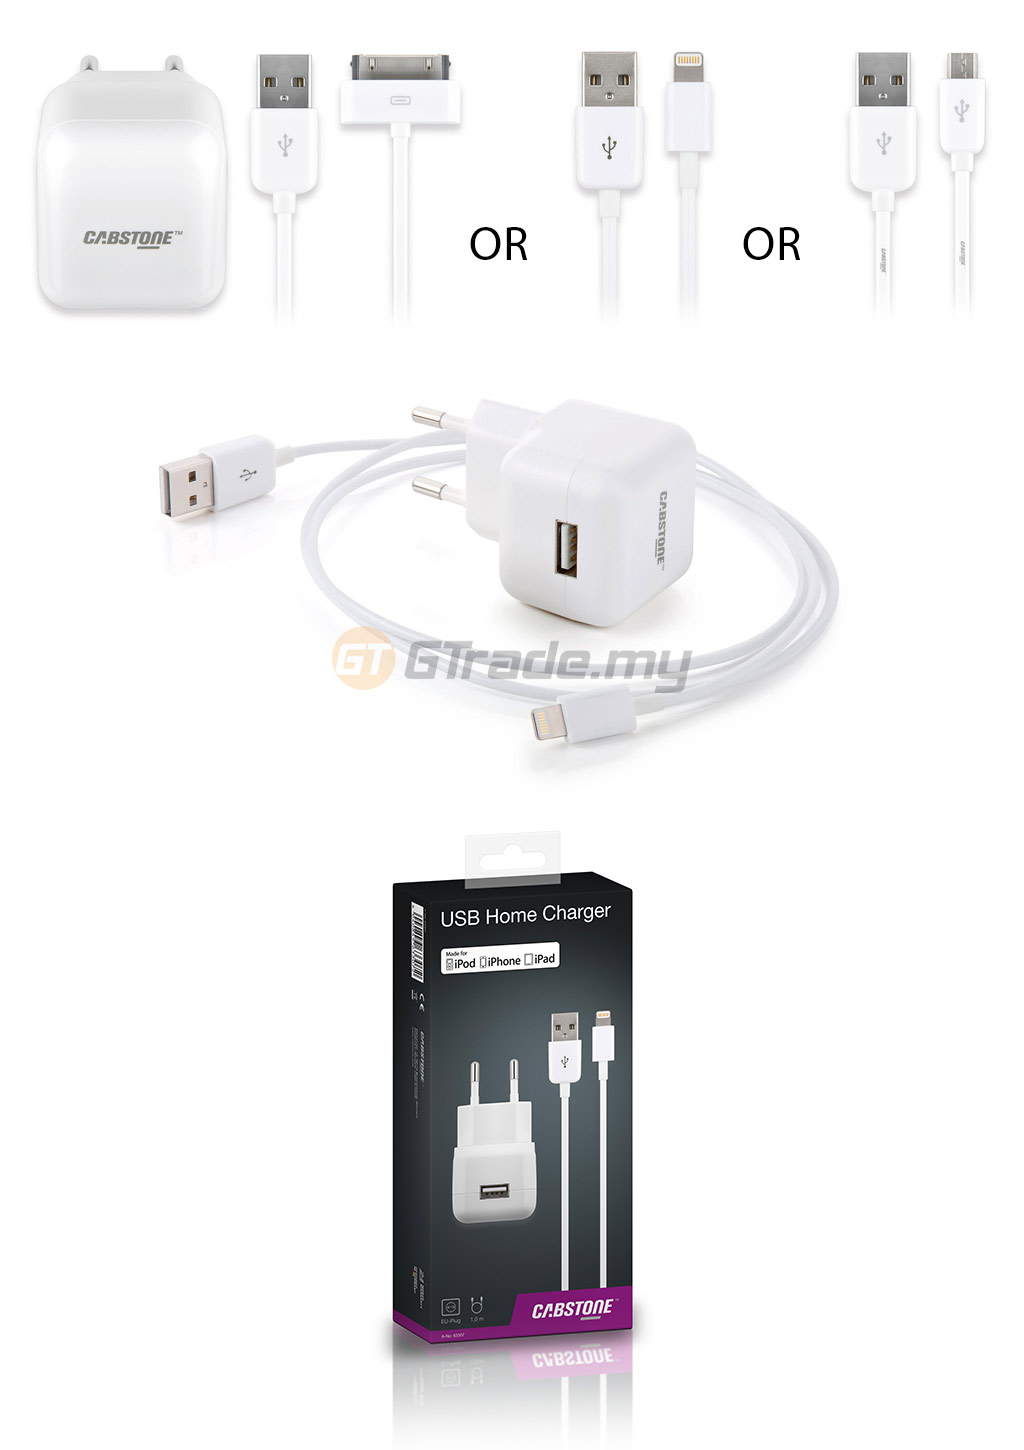 cabstone-sync-data-usb-cable-travel-wall-charger-set-p